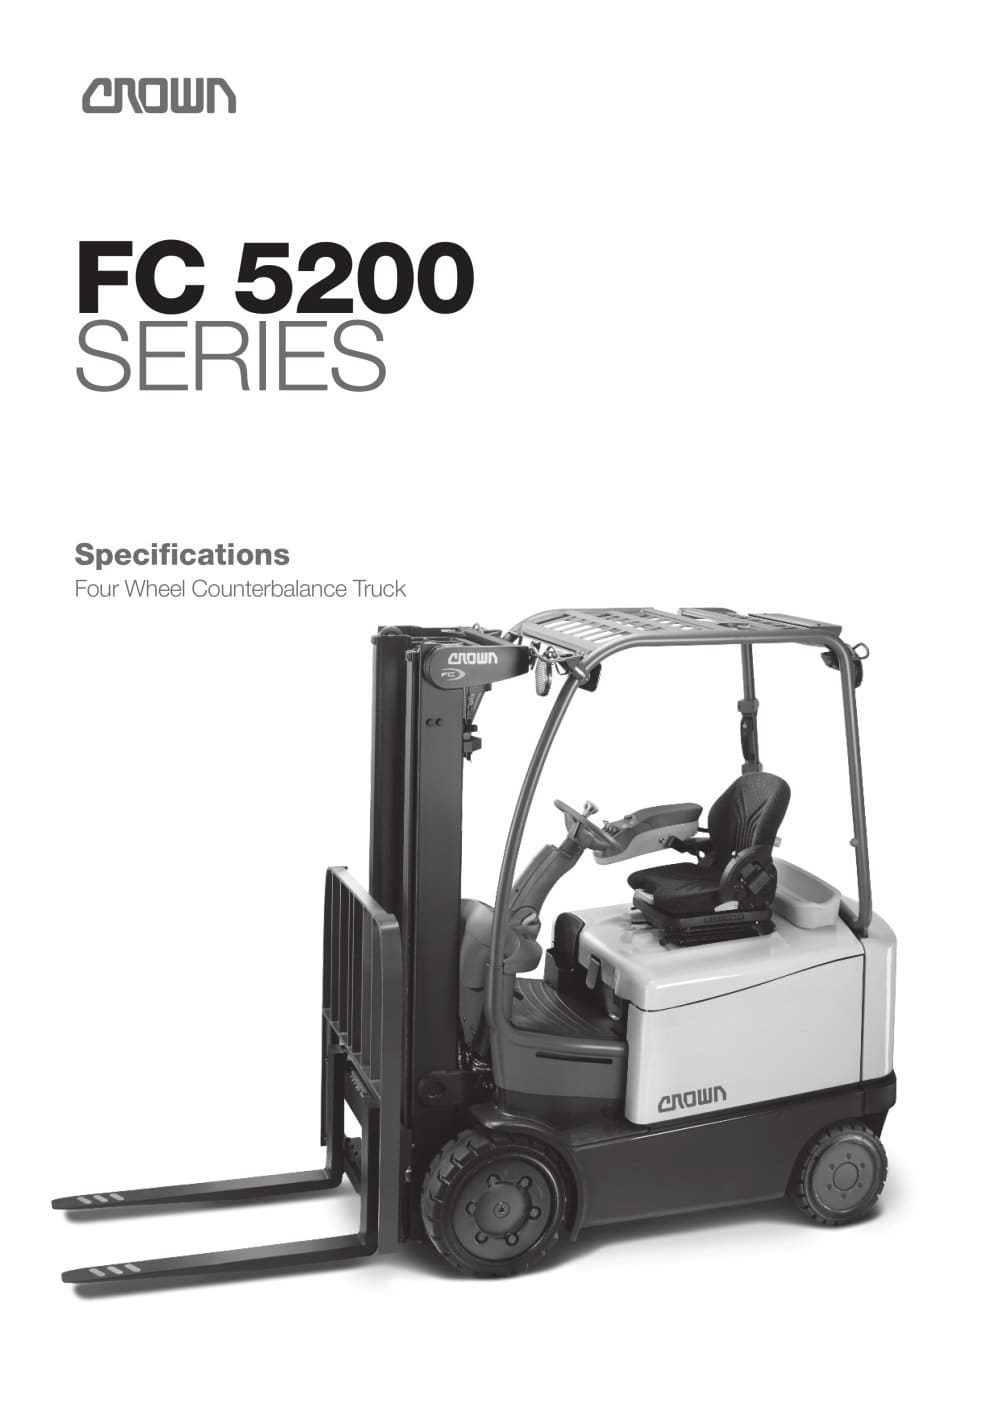 hight resolution of forklift fc 5200 1 10 pages